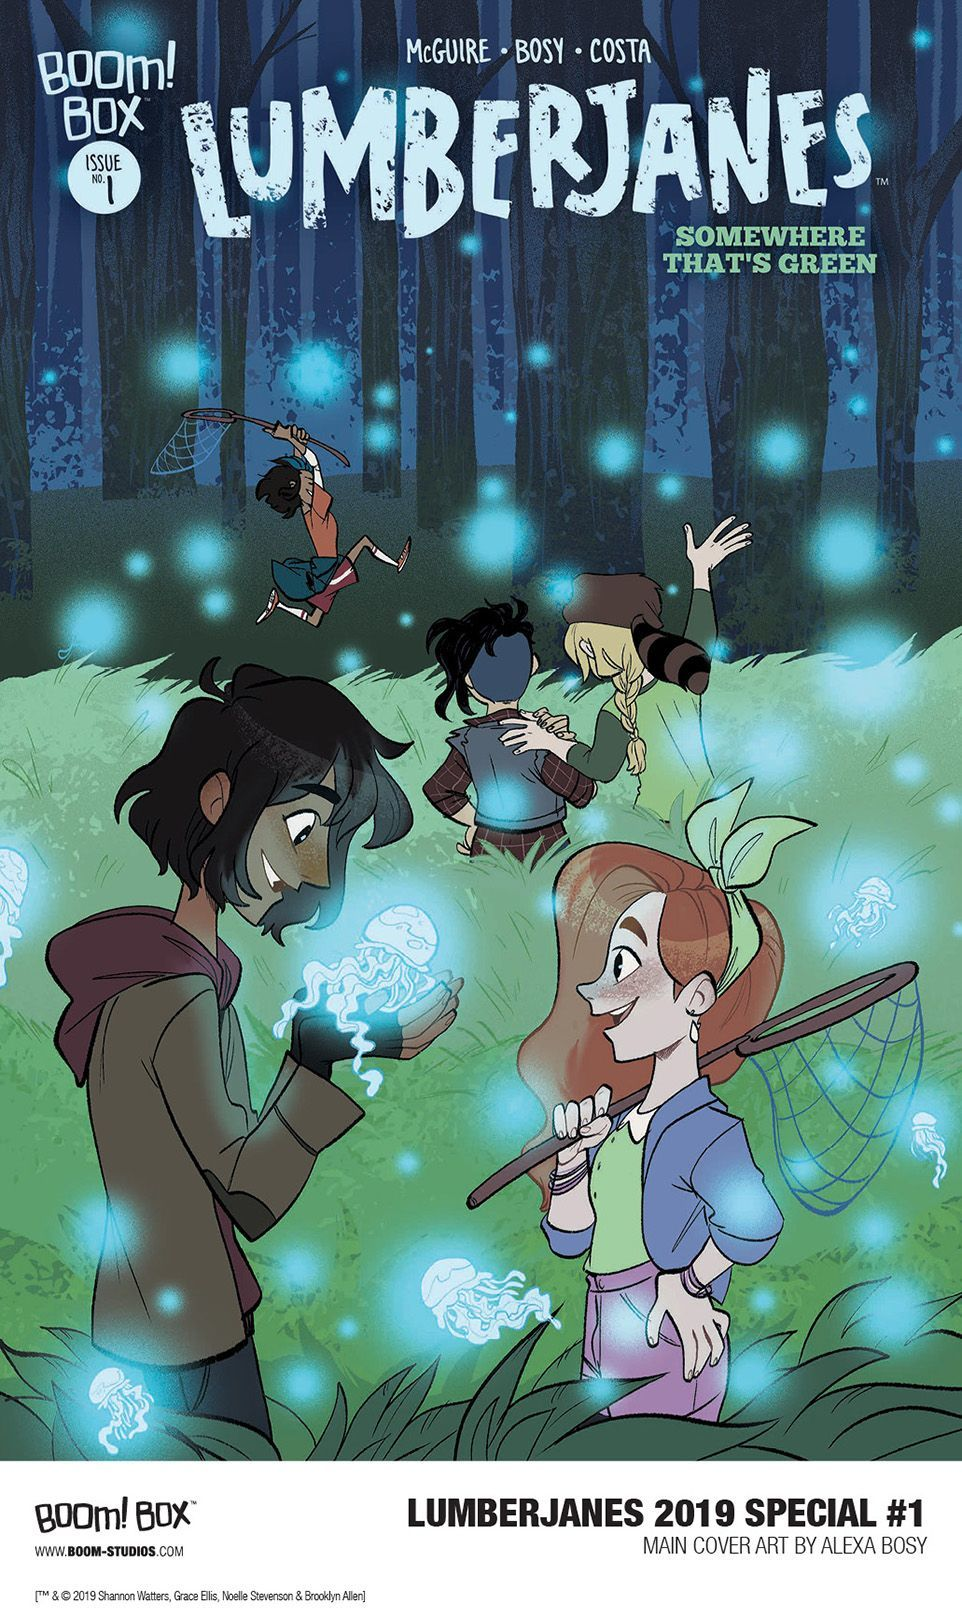 Lumberjanes-Special-Somewhere-Thats-Green-1